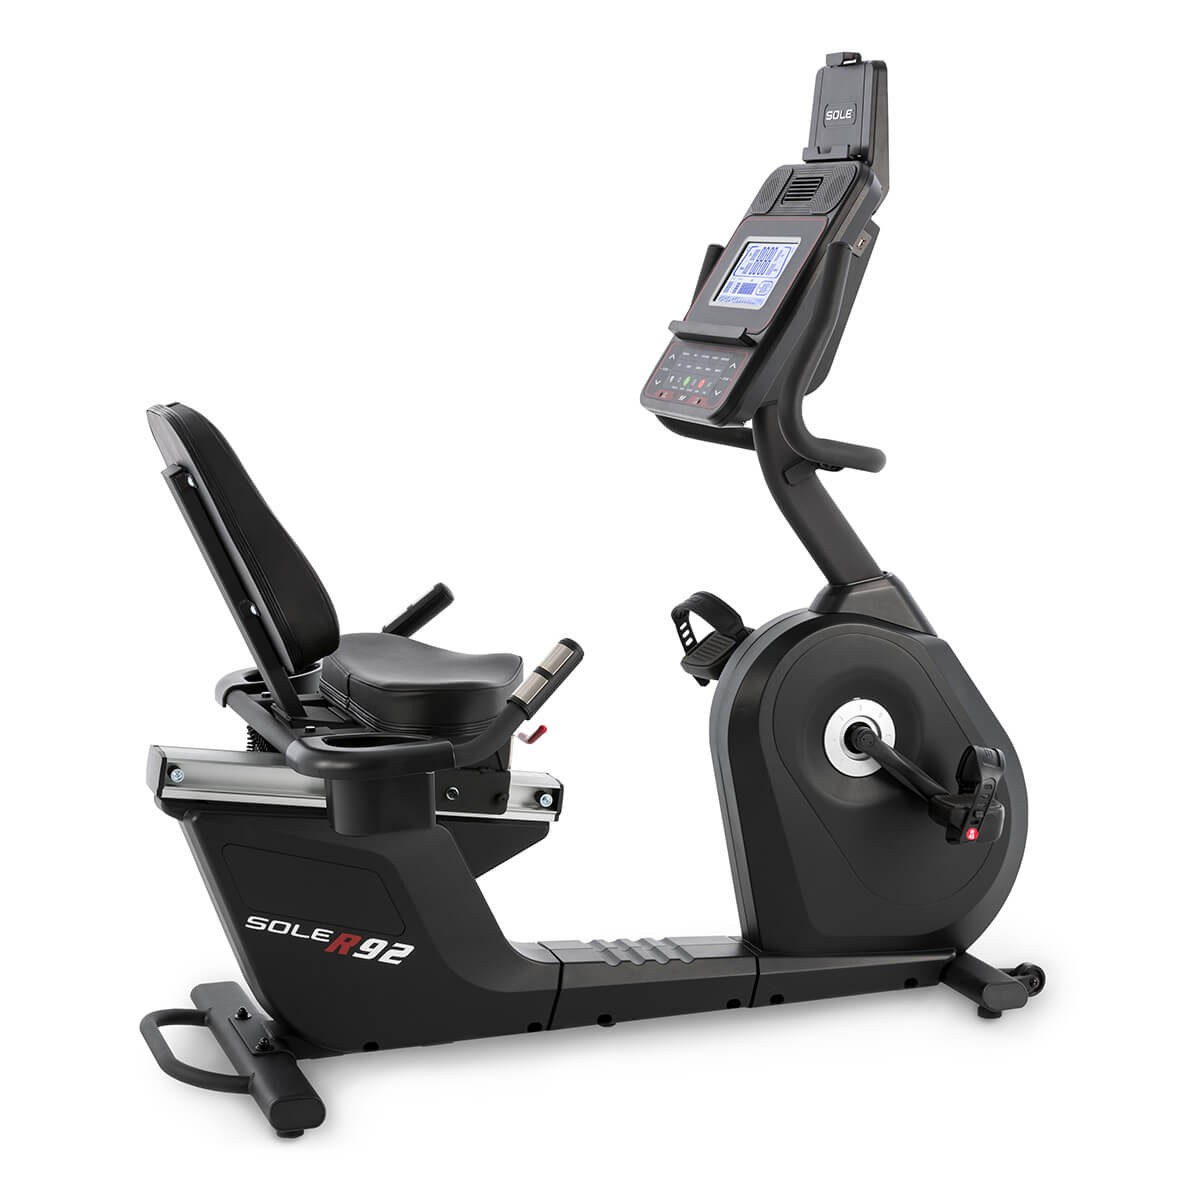 Rower poziomy SOLE by HAMMER R92 model 2019